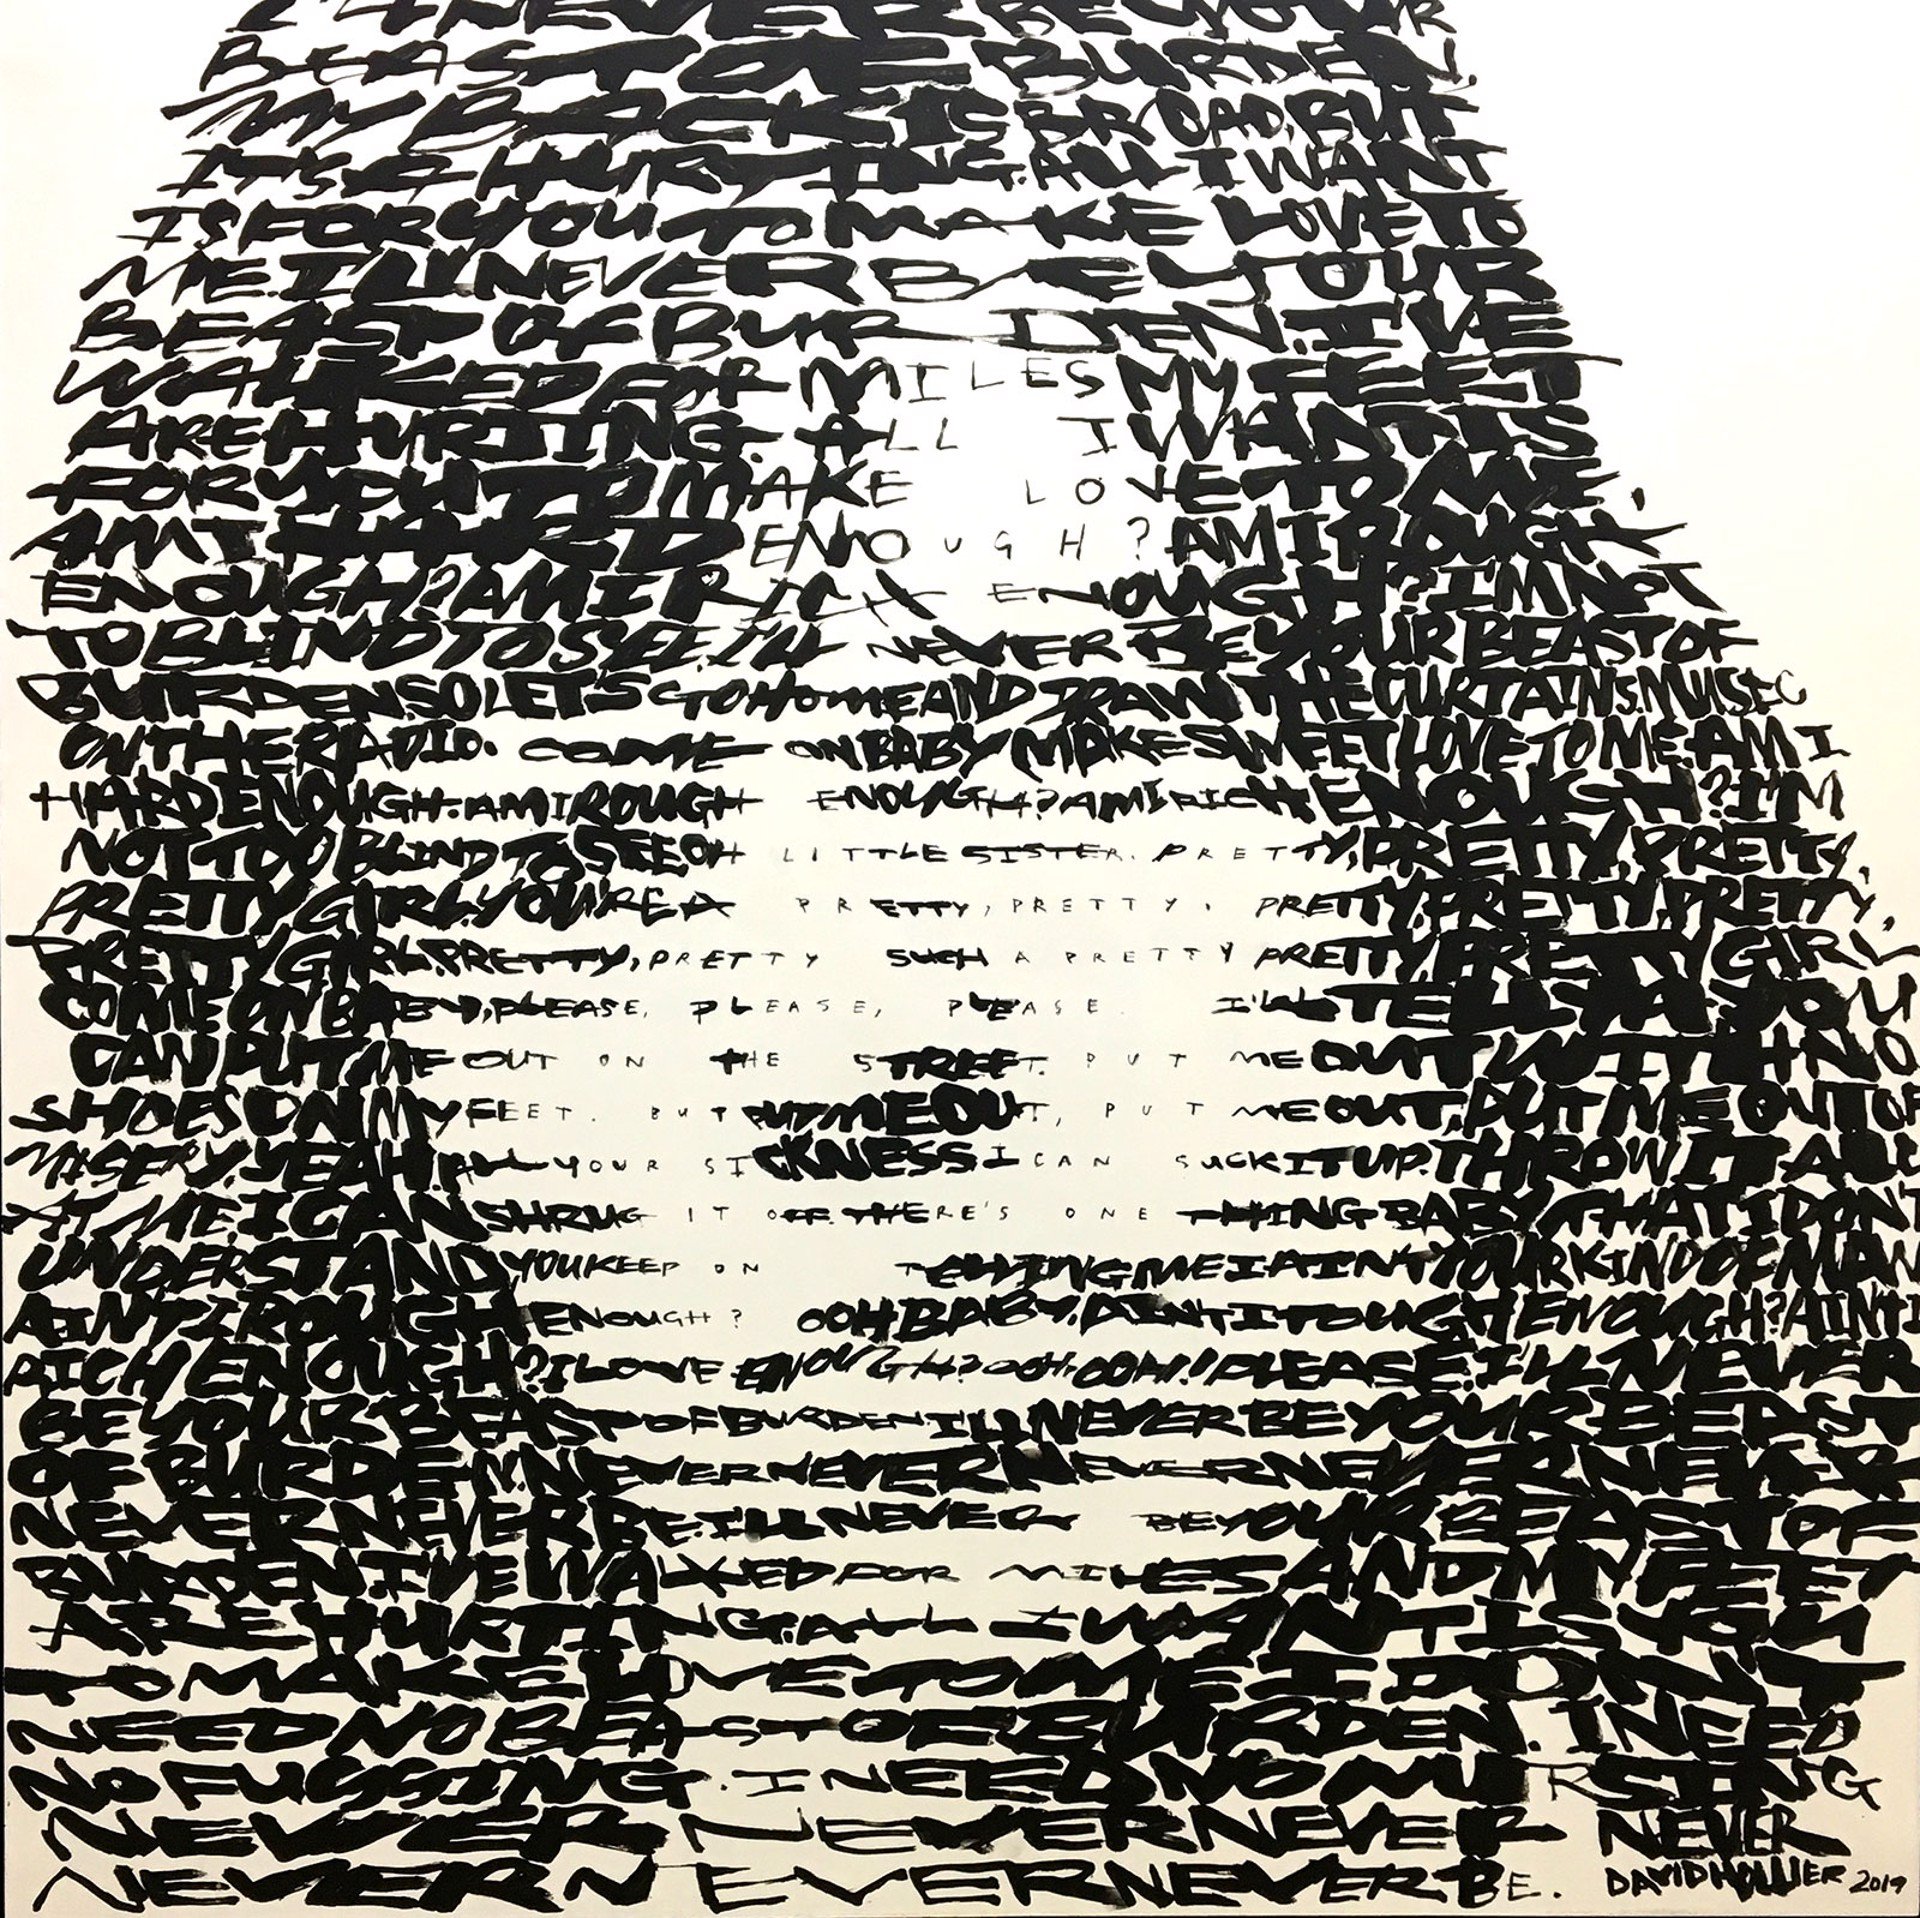 Mick Jagger - (text: 'Beast of Burden' by the Rolling Stones) by David Hollier